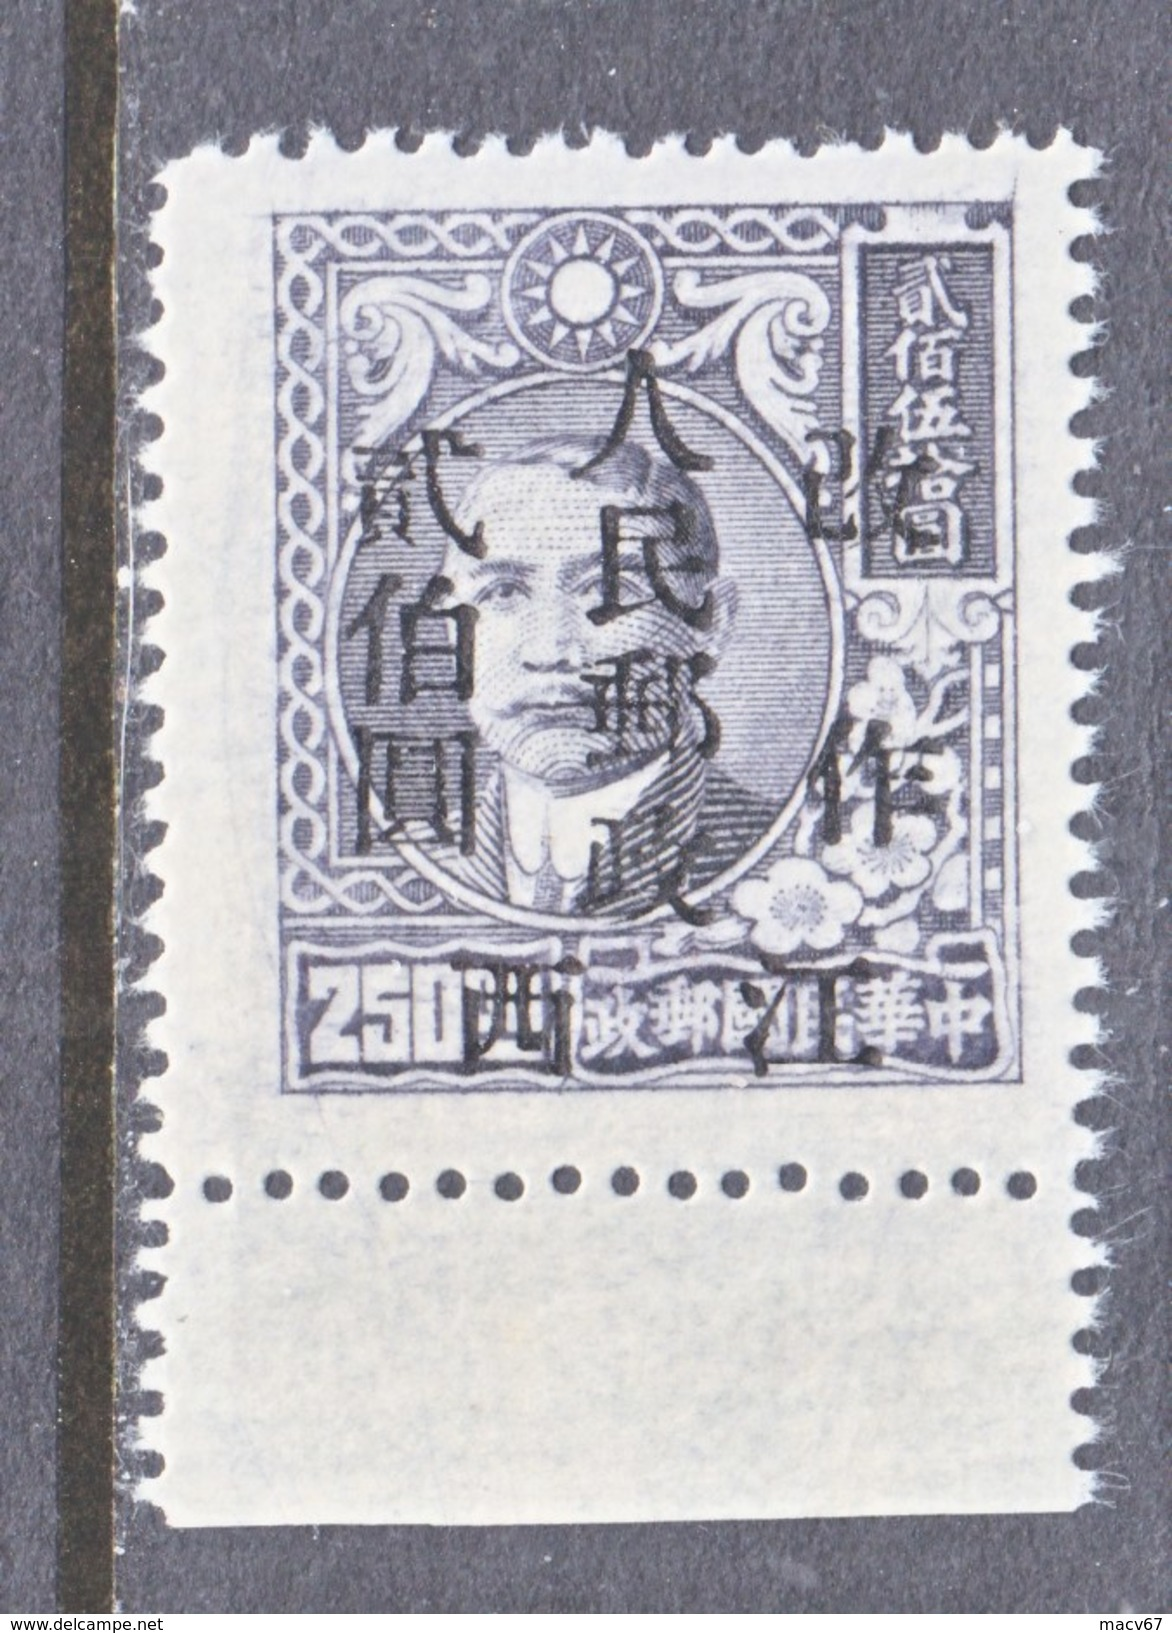 PRC  LIBERATED  AREA   CENTRAL  CHINA  6 L 22  * - Central China 1948-49